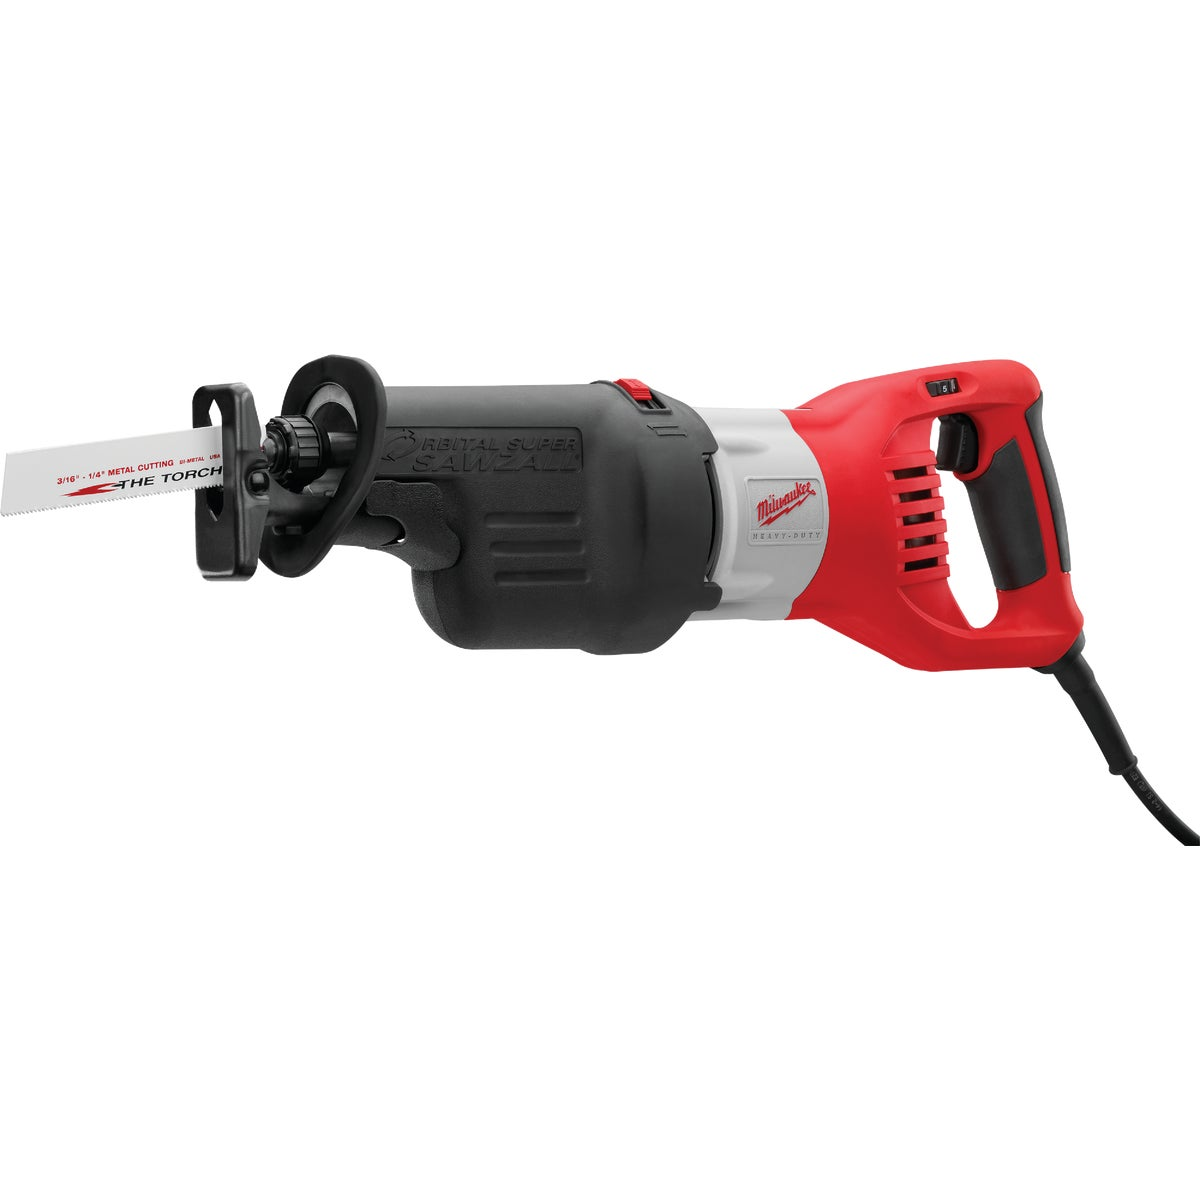 13A ORBITL SUPER SAWZALL - 653621 by Milwaukee Elec Tool